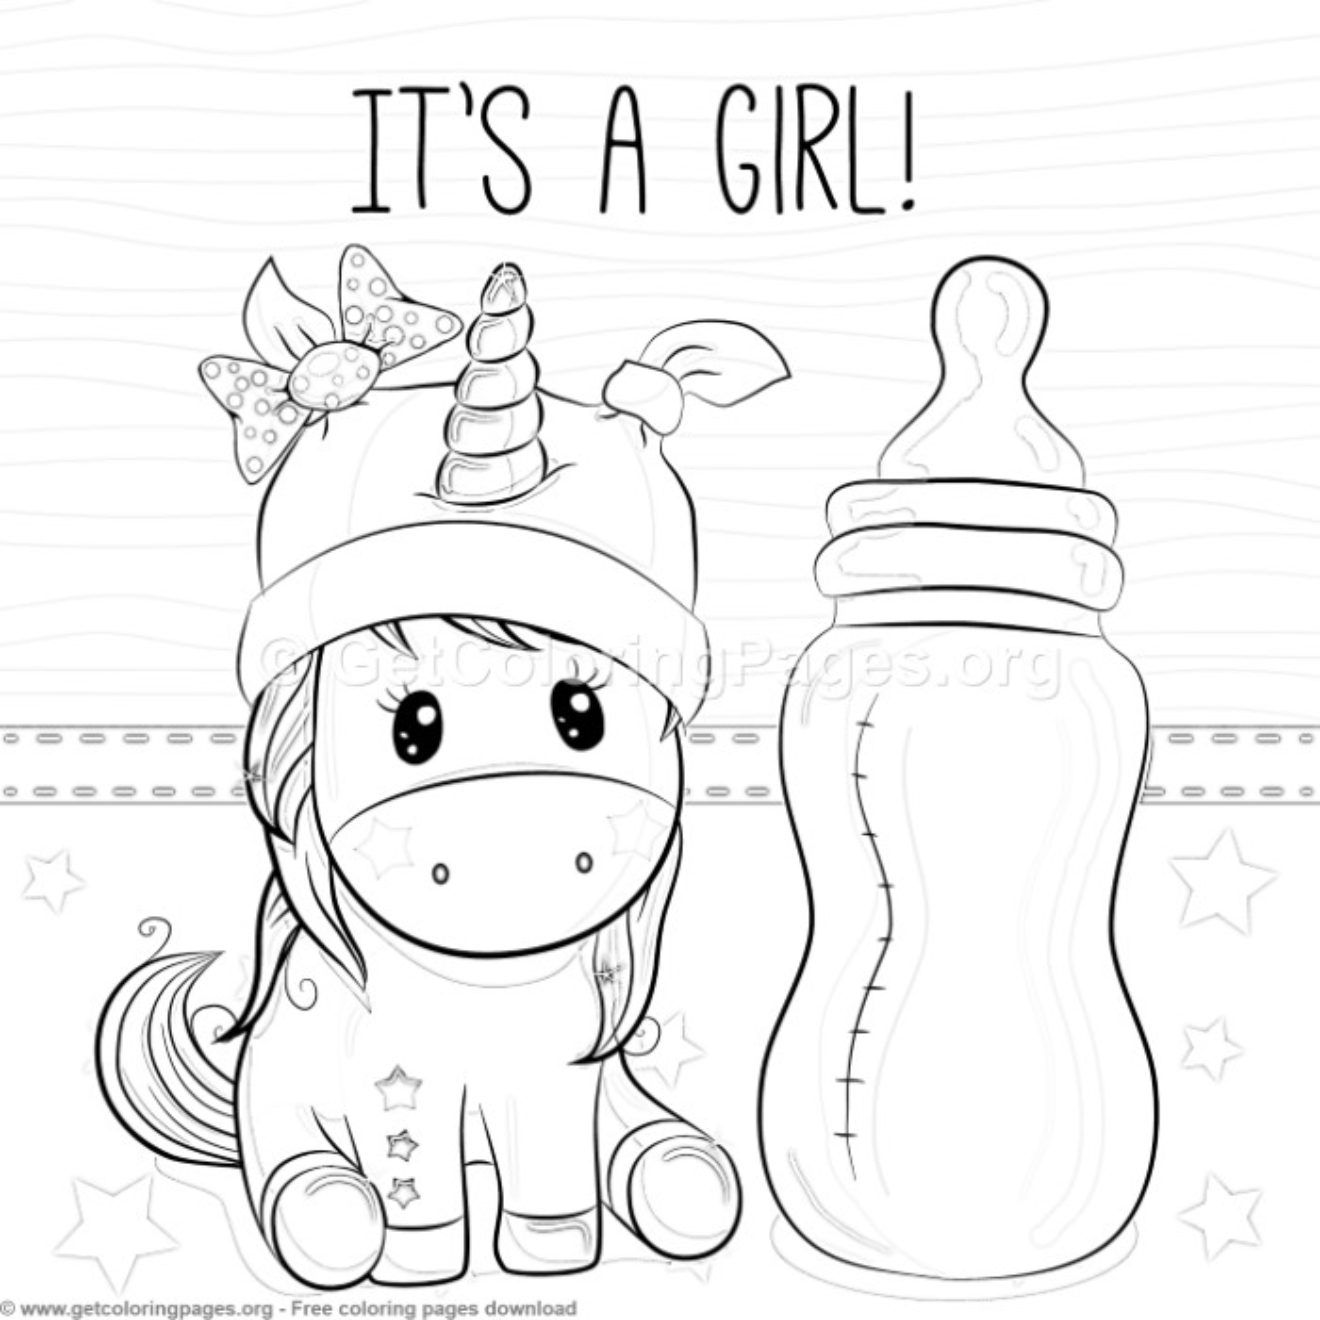 Unicorn coloring pages for adults getcoloringpages org